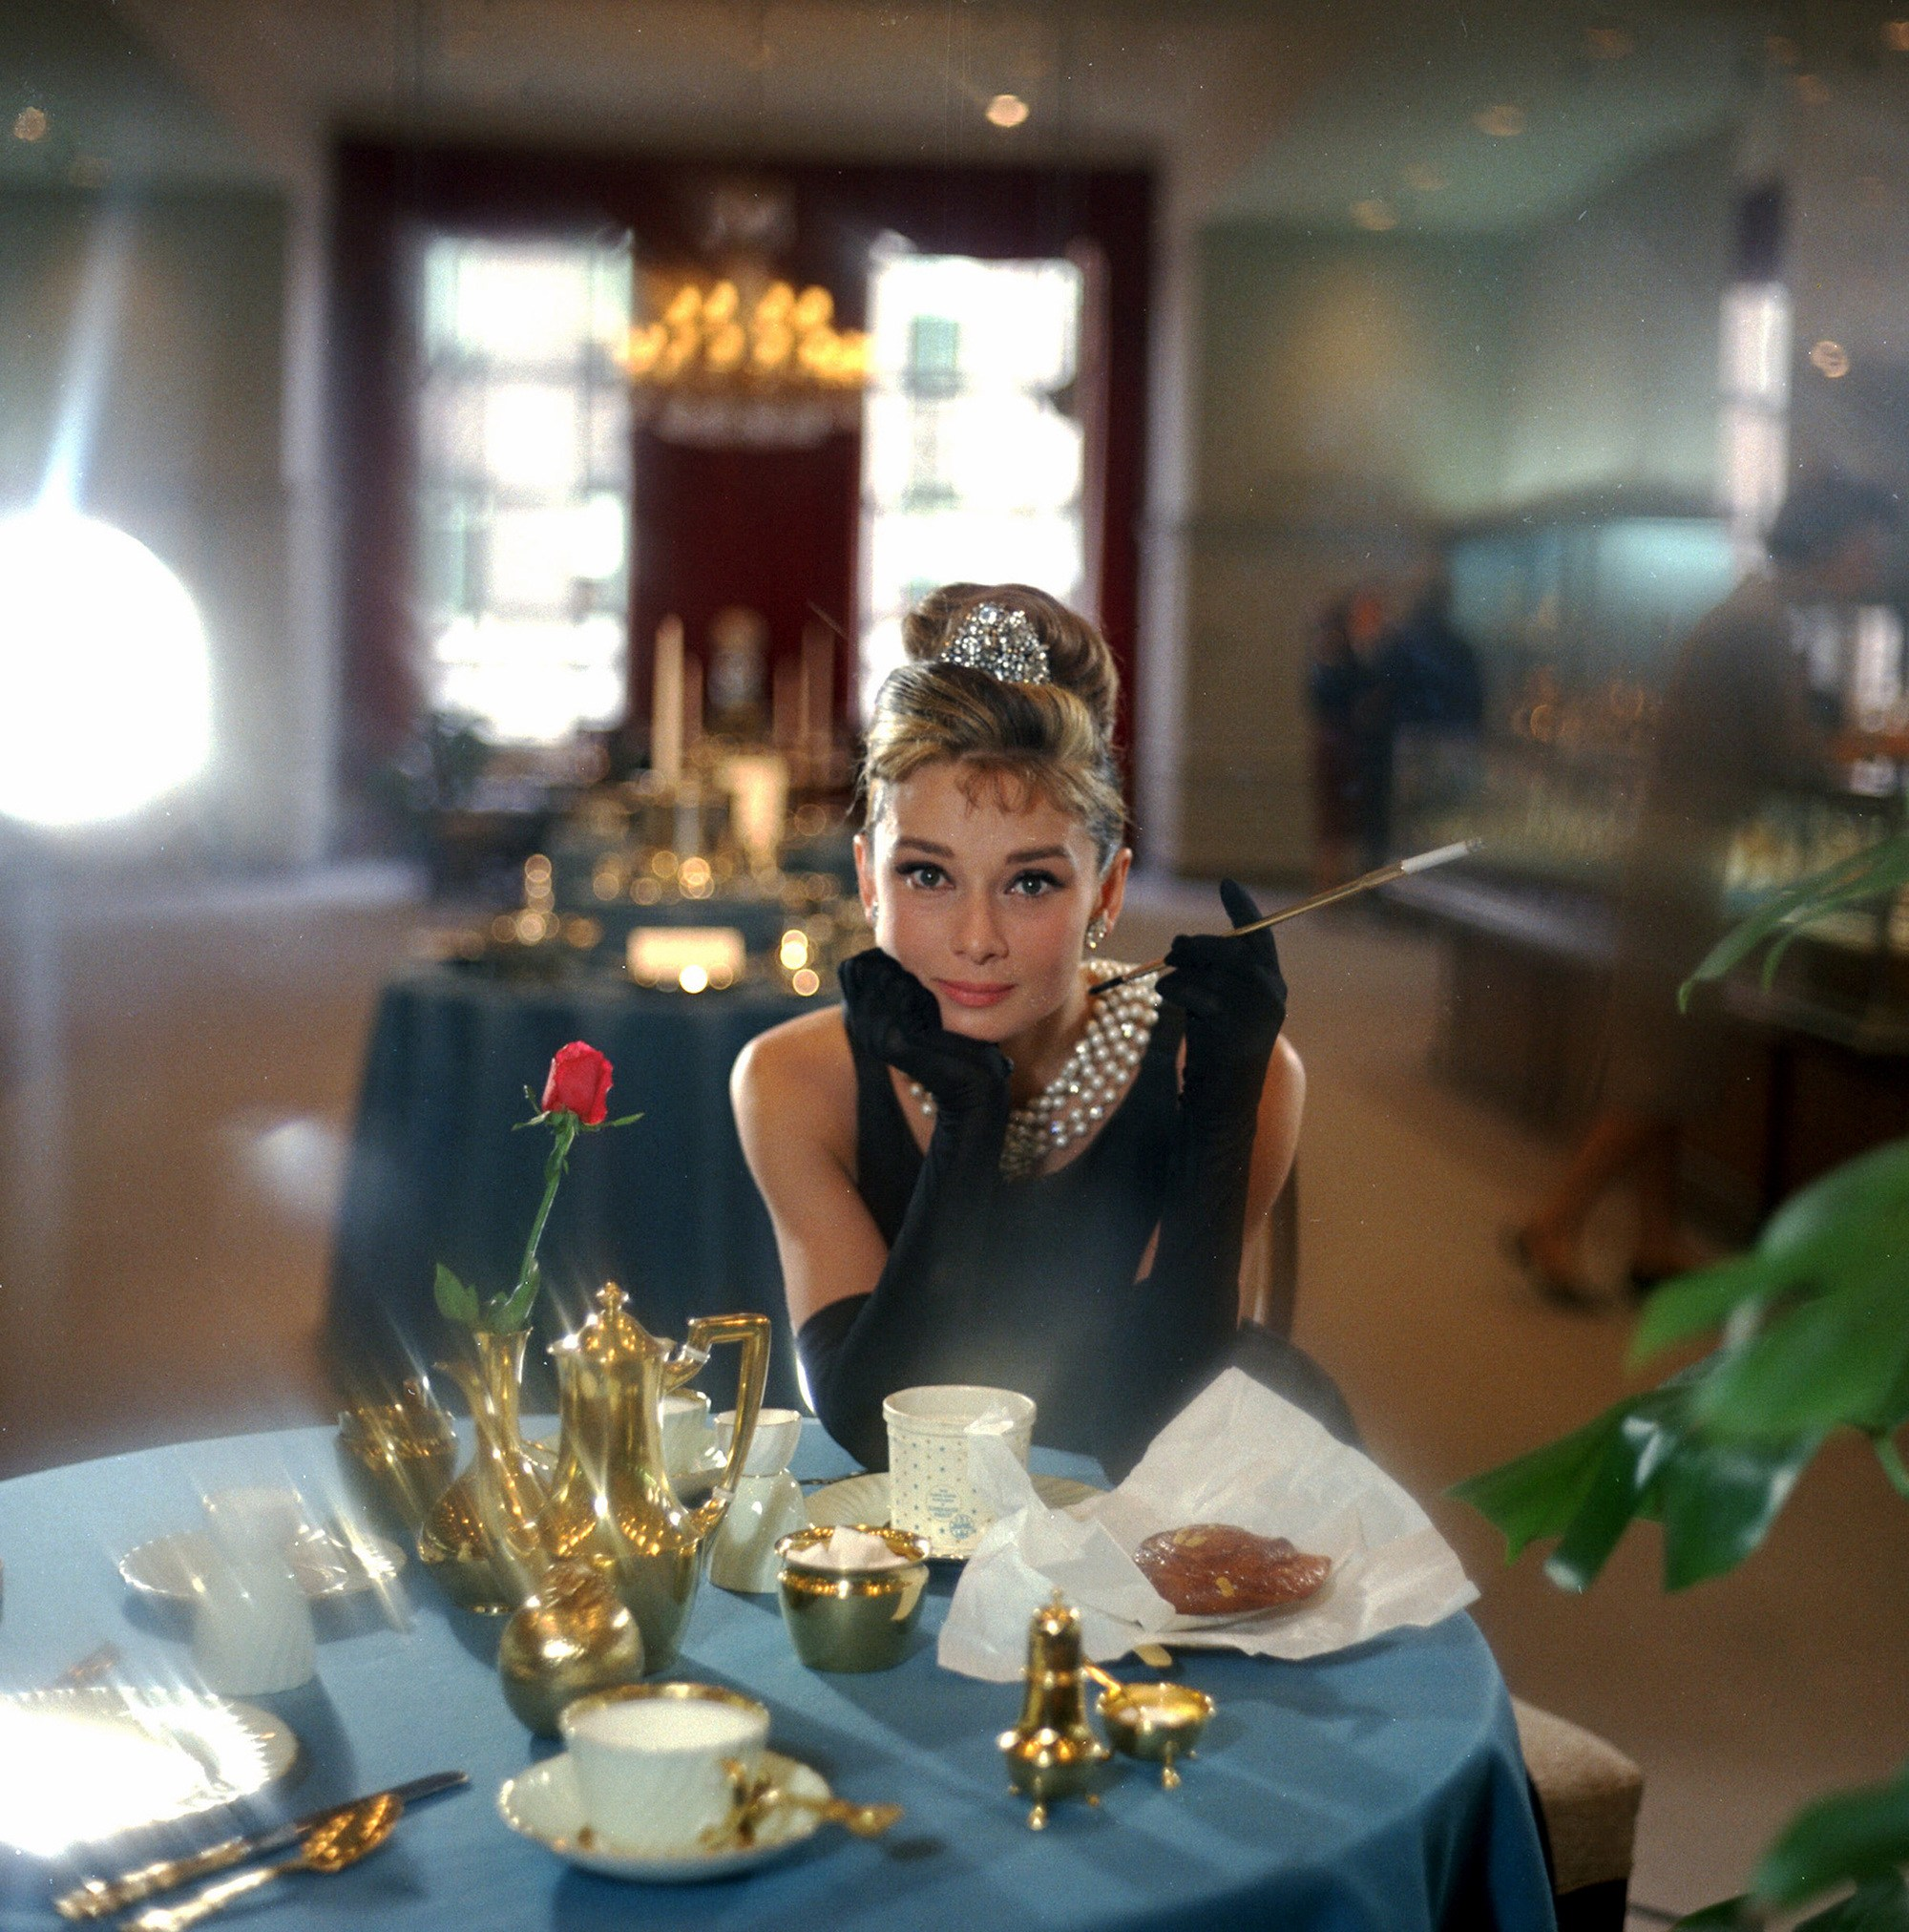 Audrey Hepburn as Holly Golightly, with beehive updo hairstyle, wearing all black with pearls and posing in a cafe